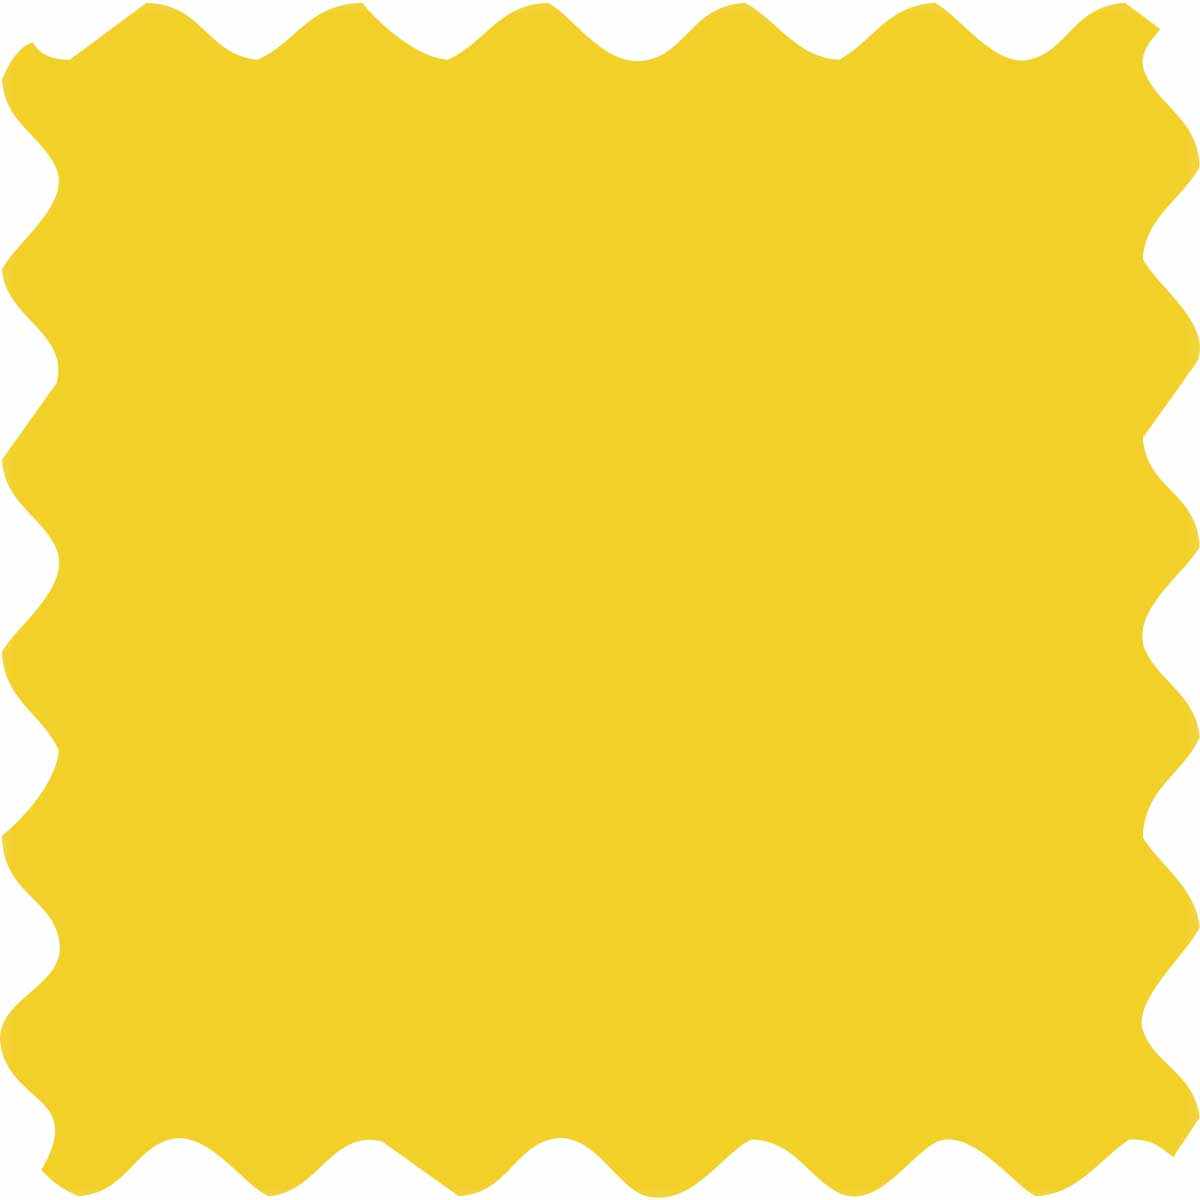 Fabric Creations™ Plush™ 3-D Fabric Paints - Lemonade, 2 oz.